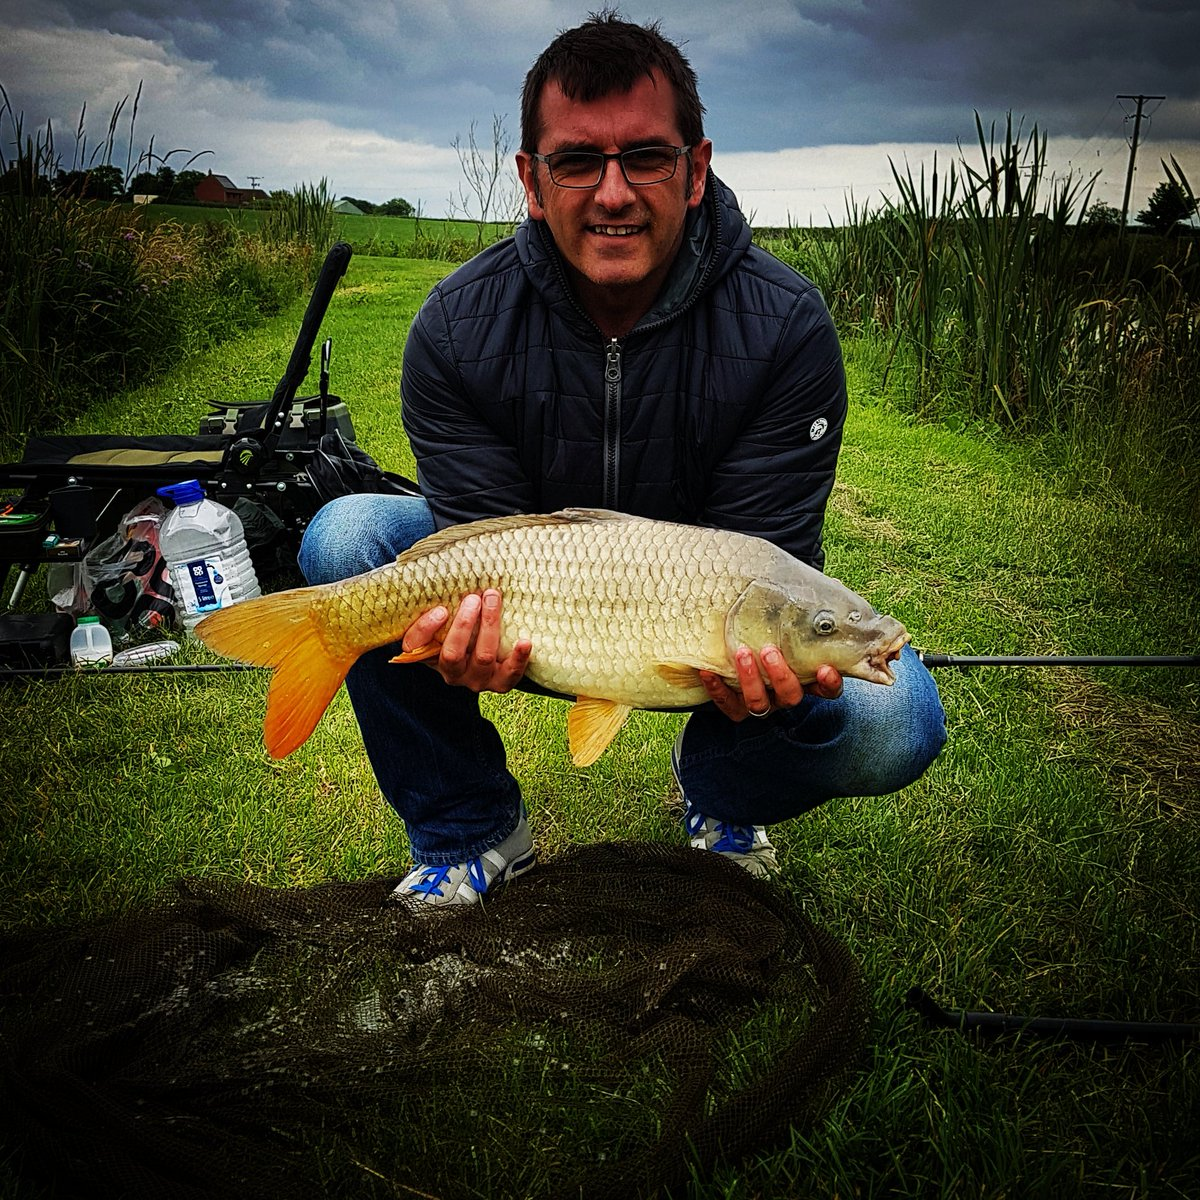 Caught this little peach today! #Shakespearerods #MitchellReels #CarpFishing #Somerset https://t.co/